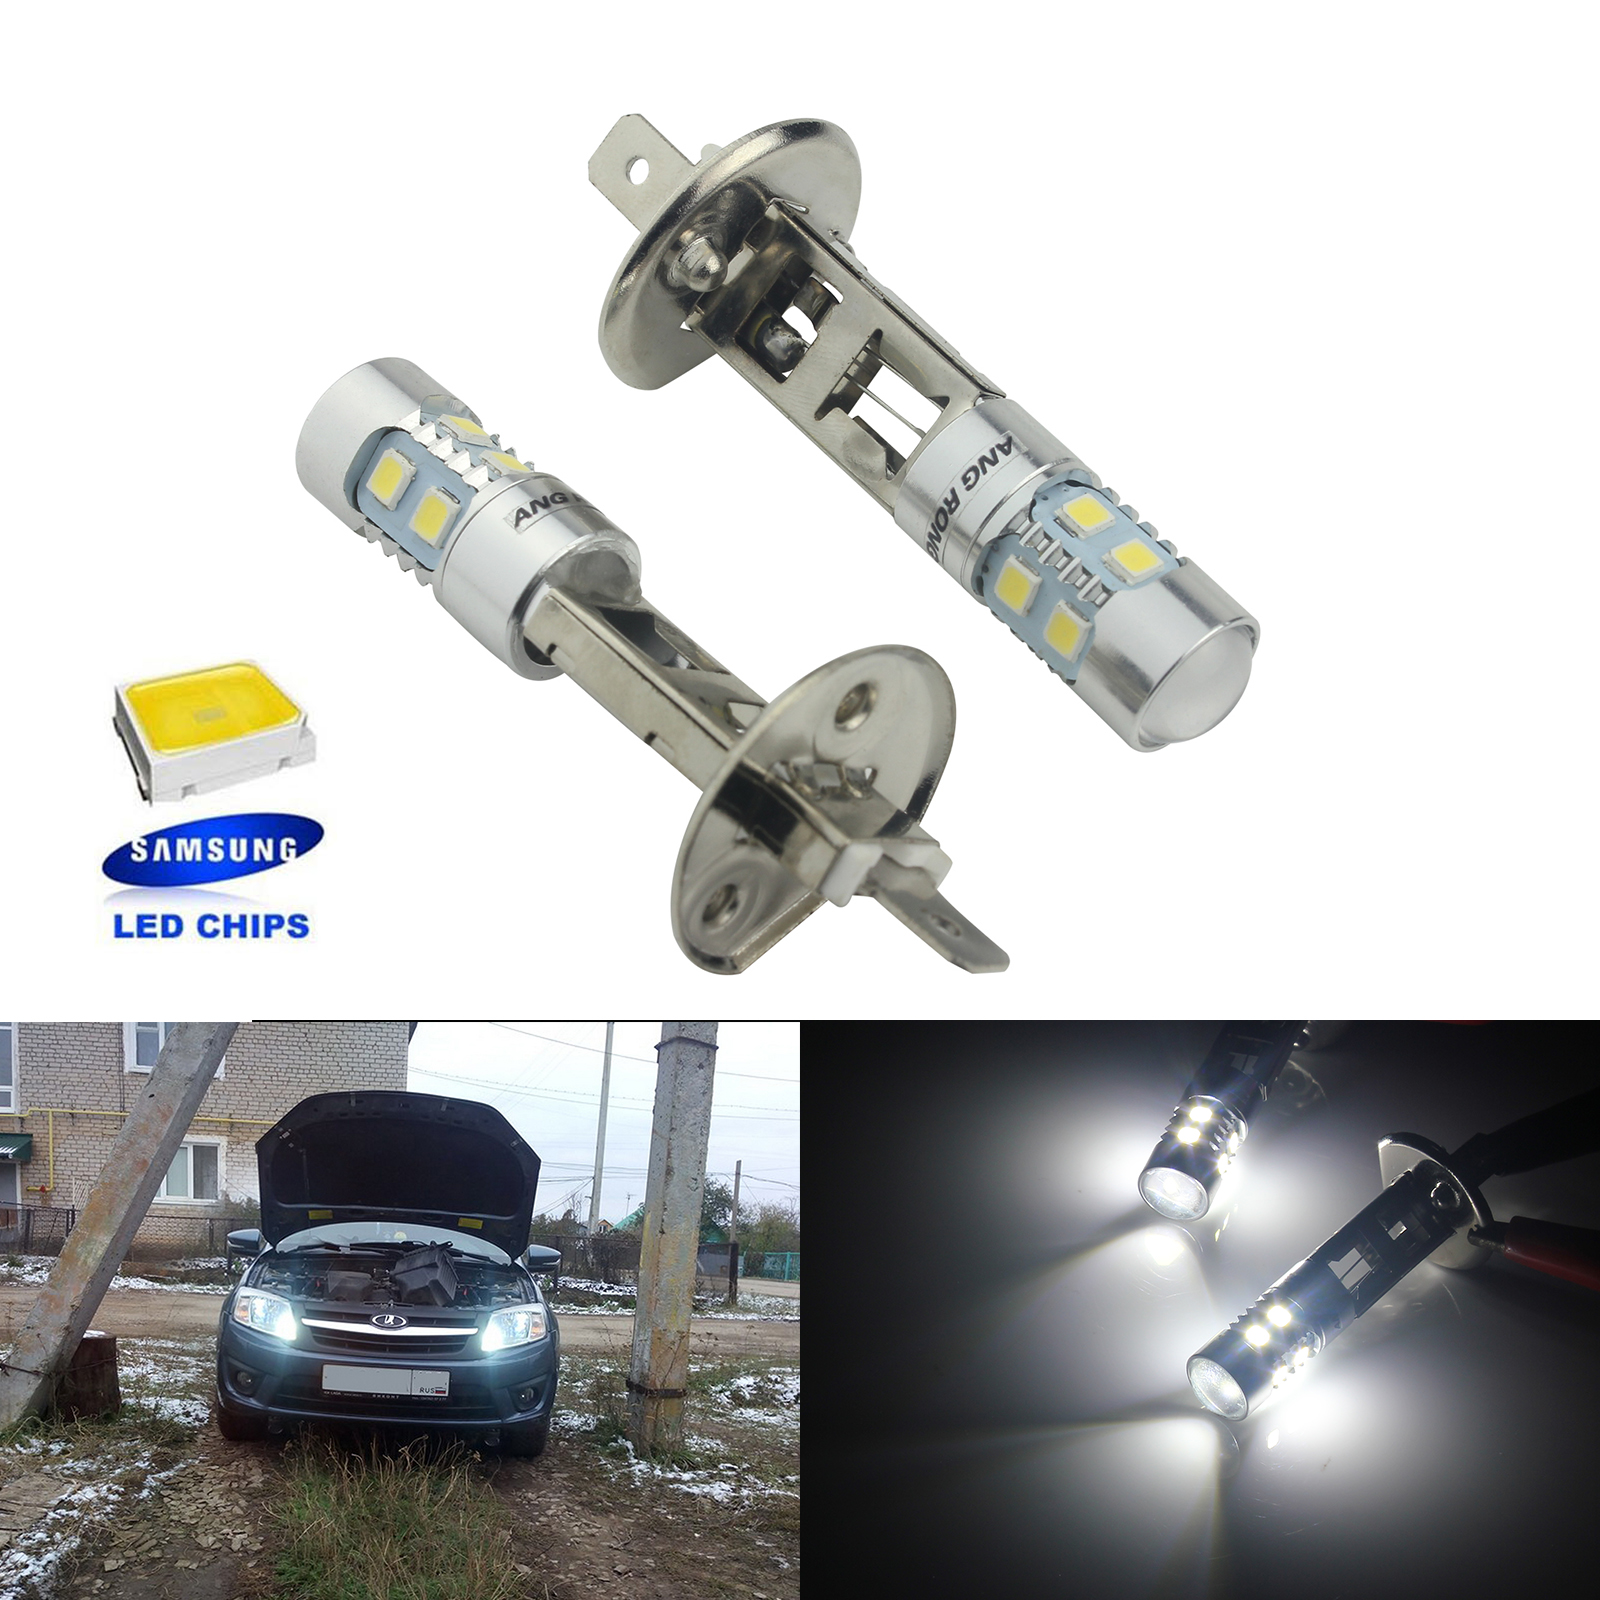 ANGRONG 2X 10W SAMSUNG <font><b>LED</b></font> <font><b>H1</b></font> 448 Bulbs Headlight High Main Beam Fog Light <font><b>Lamp</b></font> 6000k White image